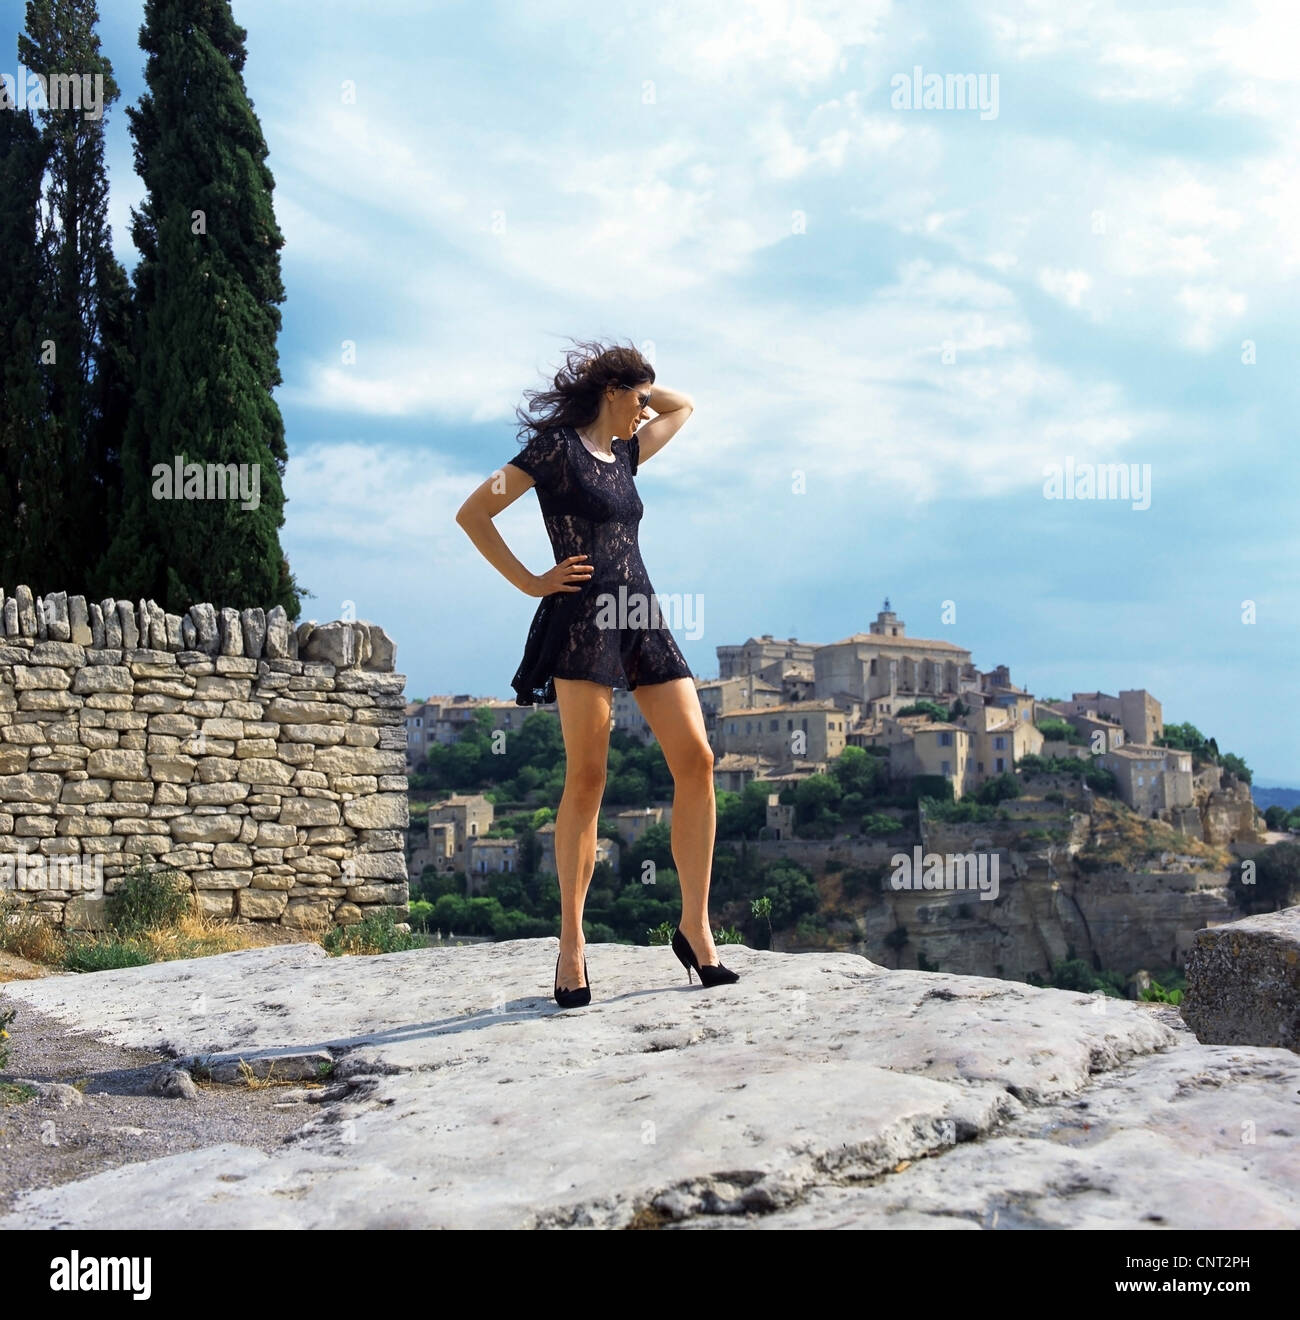 woman in minidress enjoying the view, France, Provence, Cordes - Stock Image